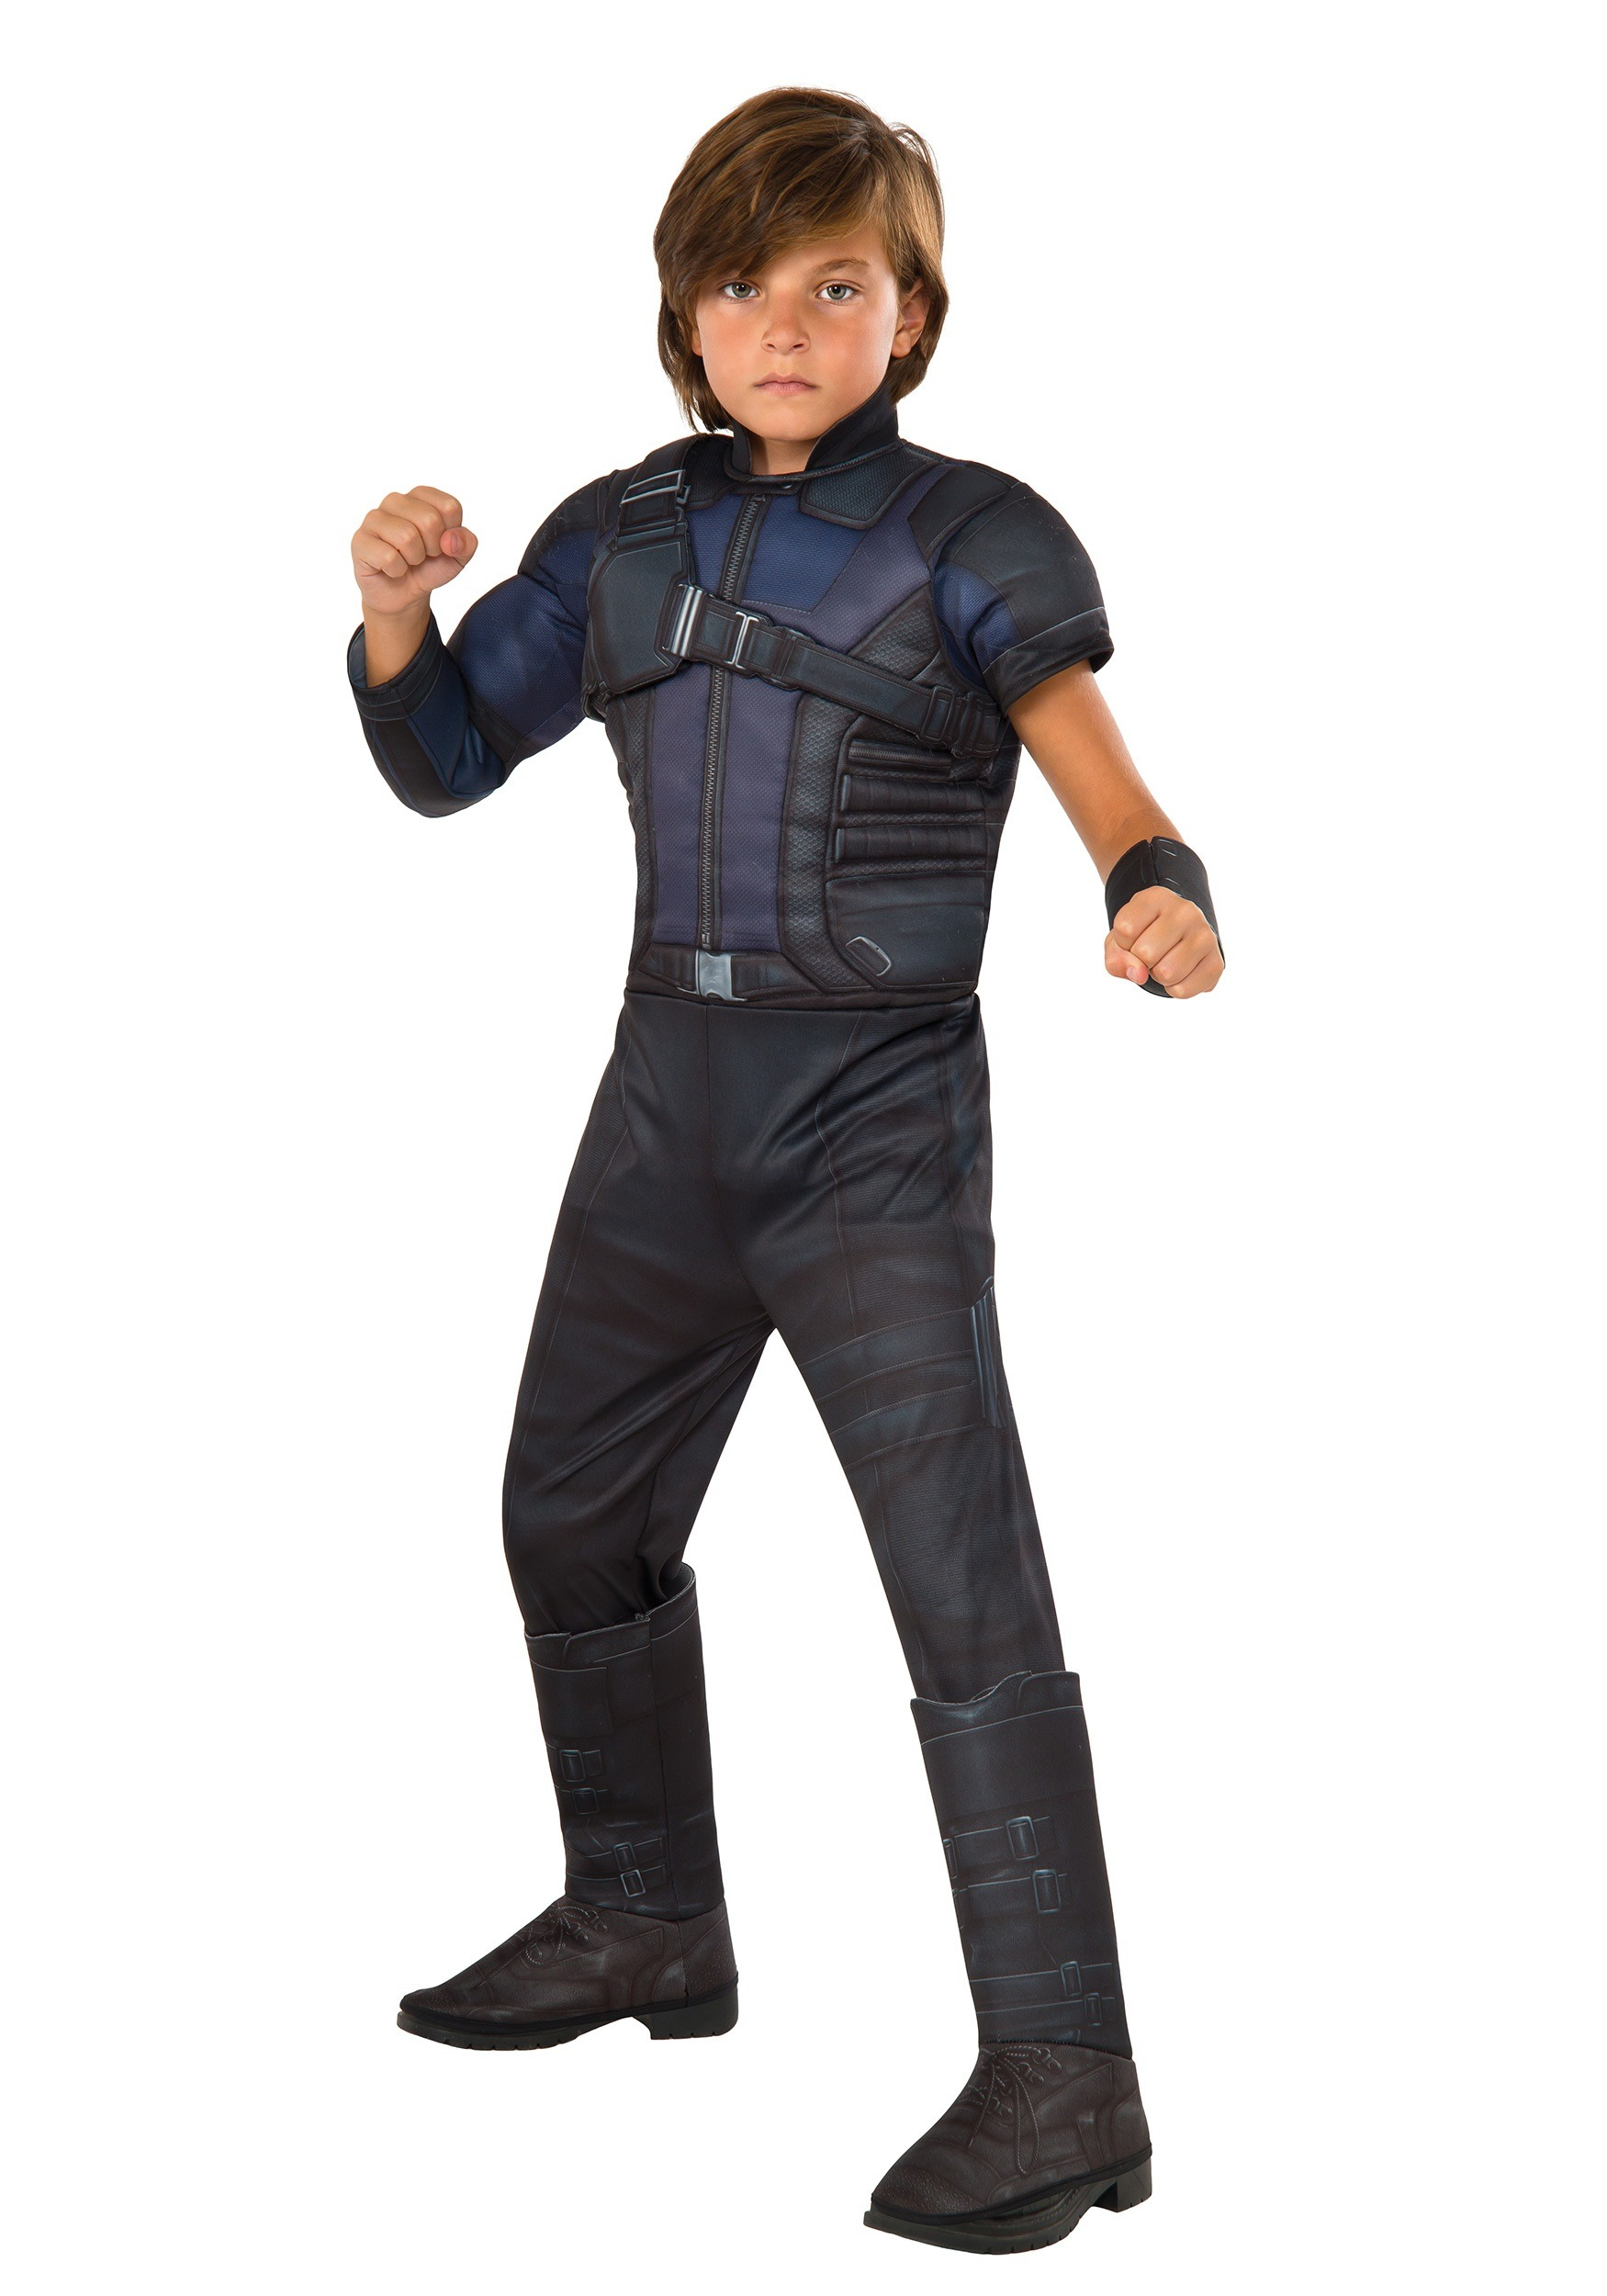 Boys Civil War Hawkeye Deluxe Costume  sc 1 st  Halloween Costumes & Avengers Hawkeye Costumes for Kids u0026 Adults - HalloweenCostumes.com